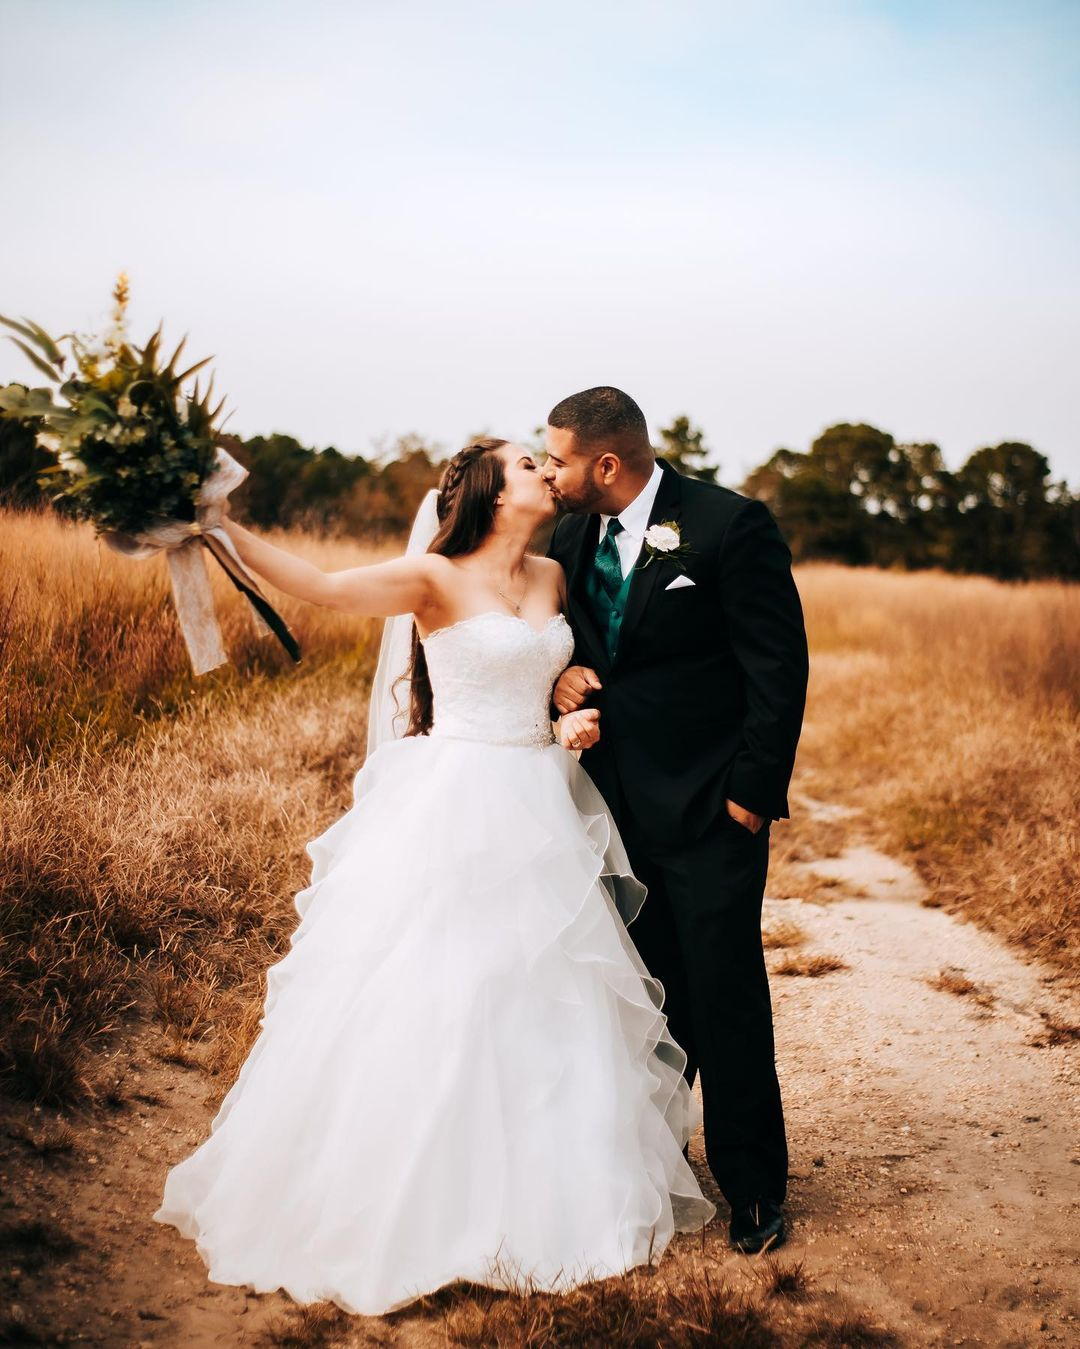 LBI Kristen + Dennis, the two of you worked so hard to make this day happen… chang…